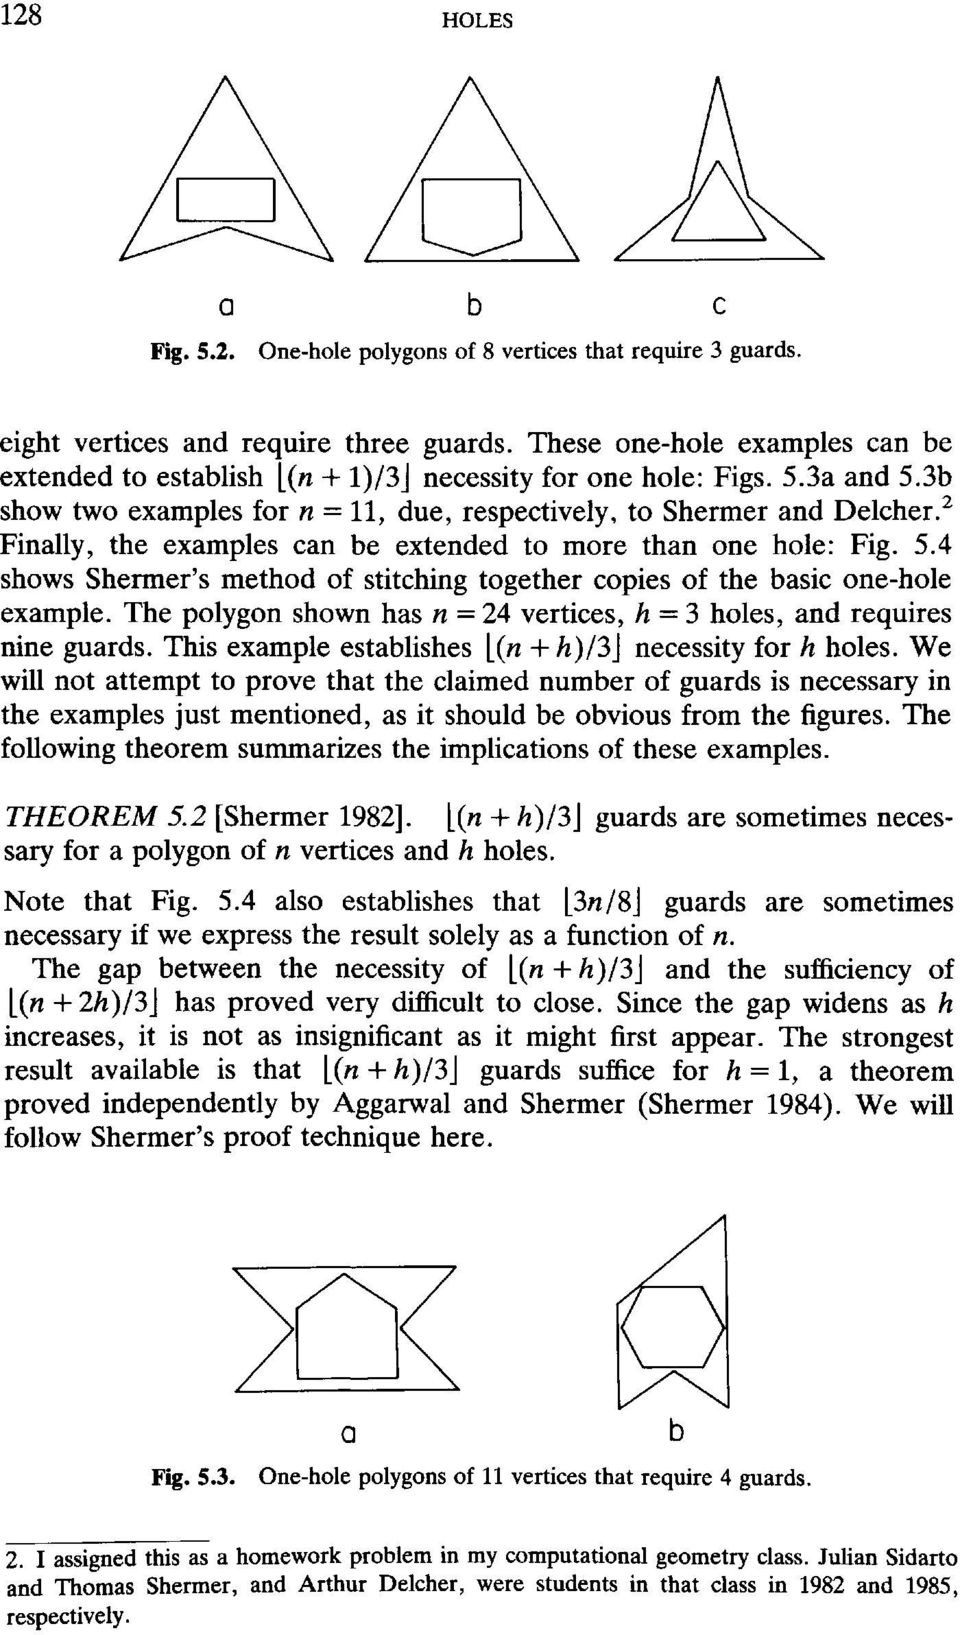 2 Finally, the examples can be extended to more than one hole: Fig. 5.4 shows Shermer's method of stitching together copies of the basic one-hole example.